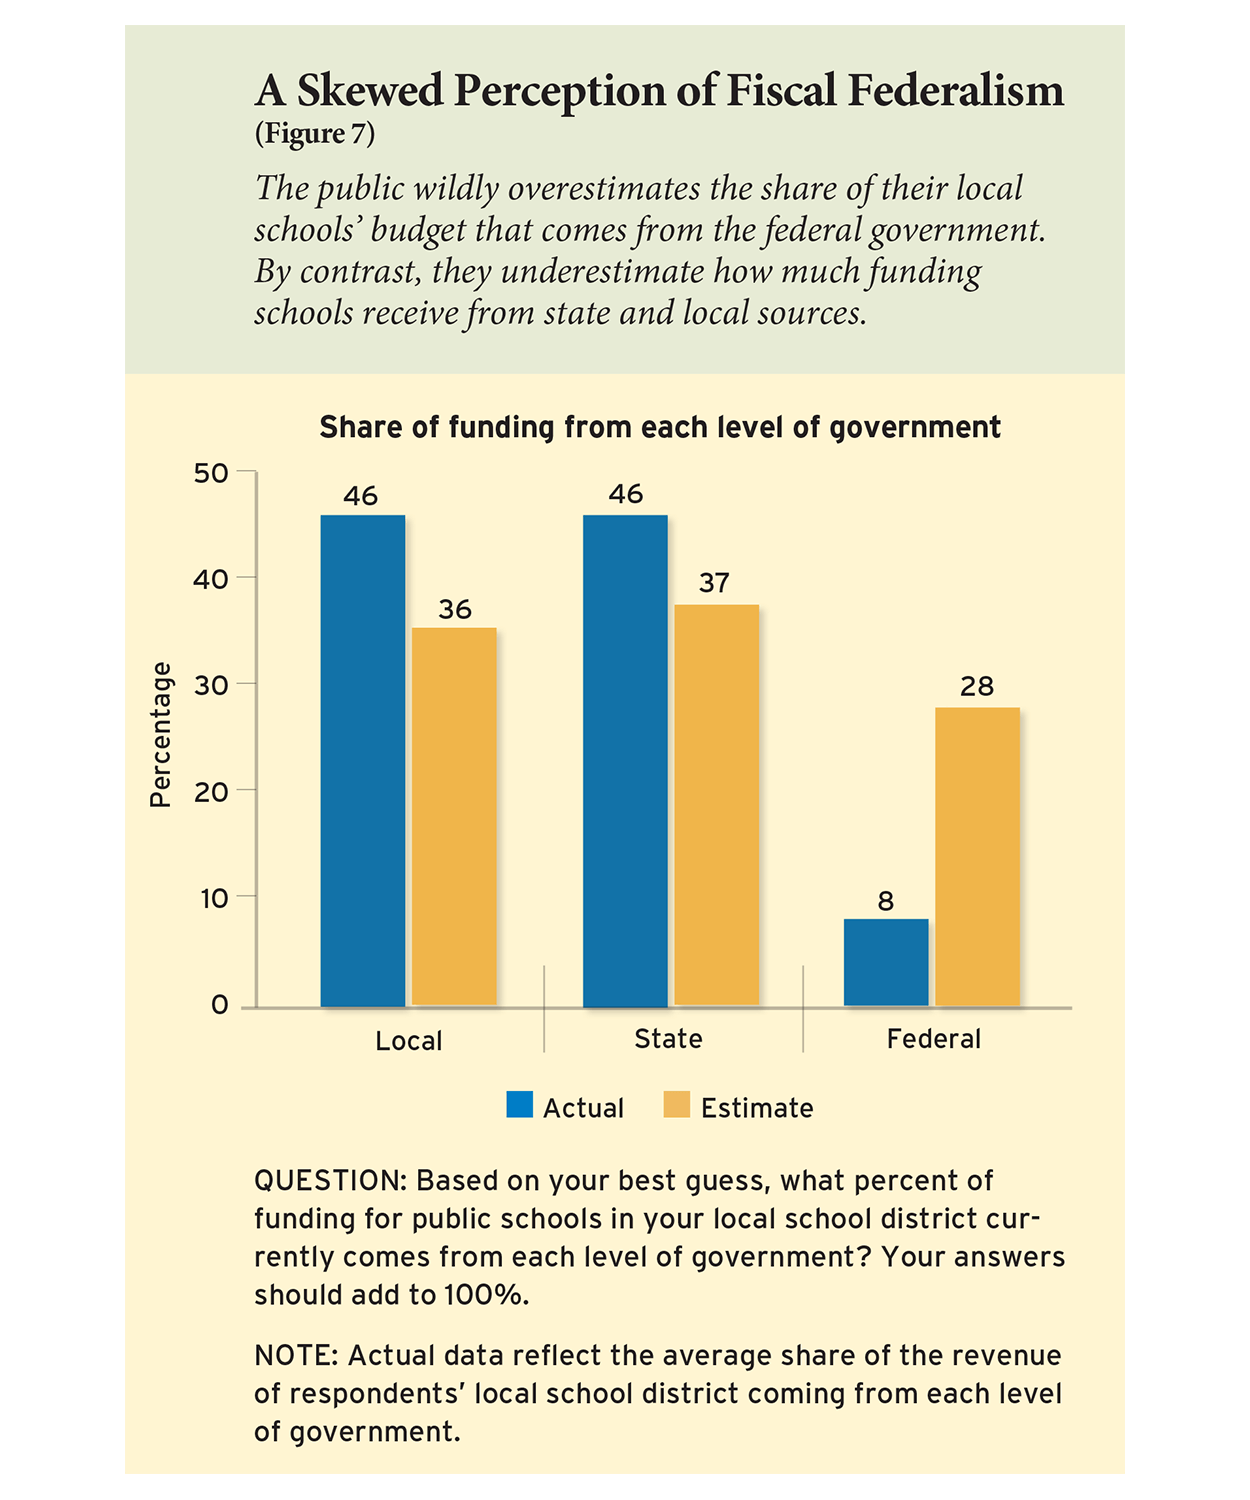 A Skewed Perception of Fiscal Federalism (Figure 7)